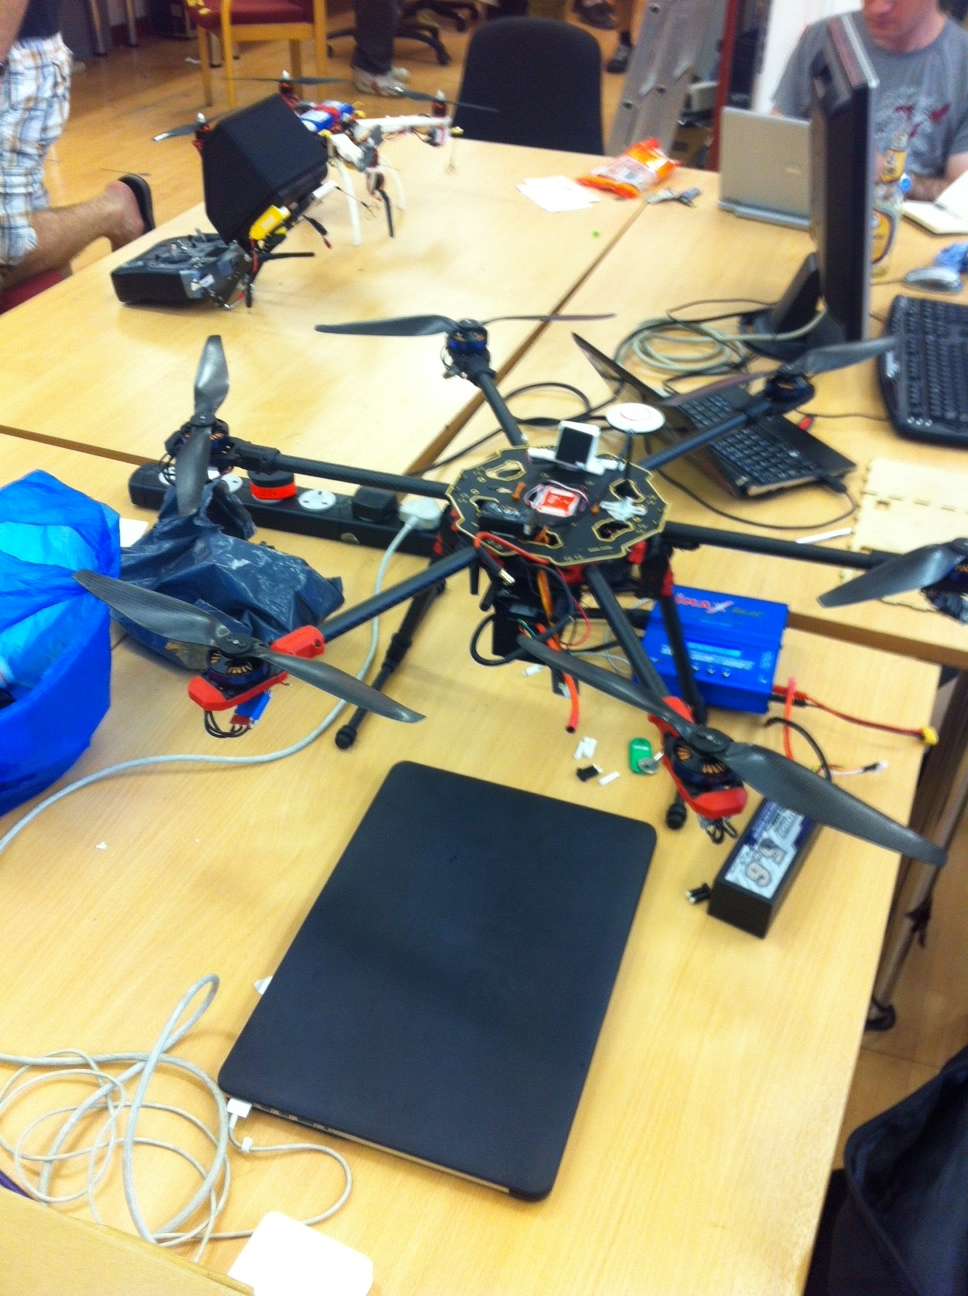 Build - a remote controlled hexopter